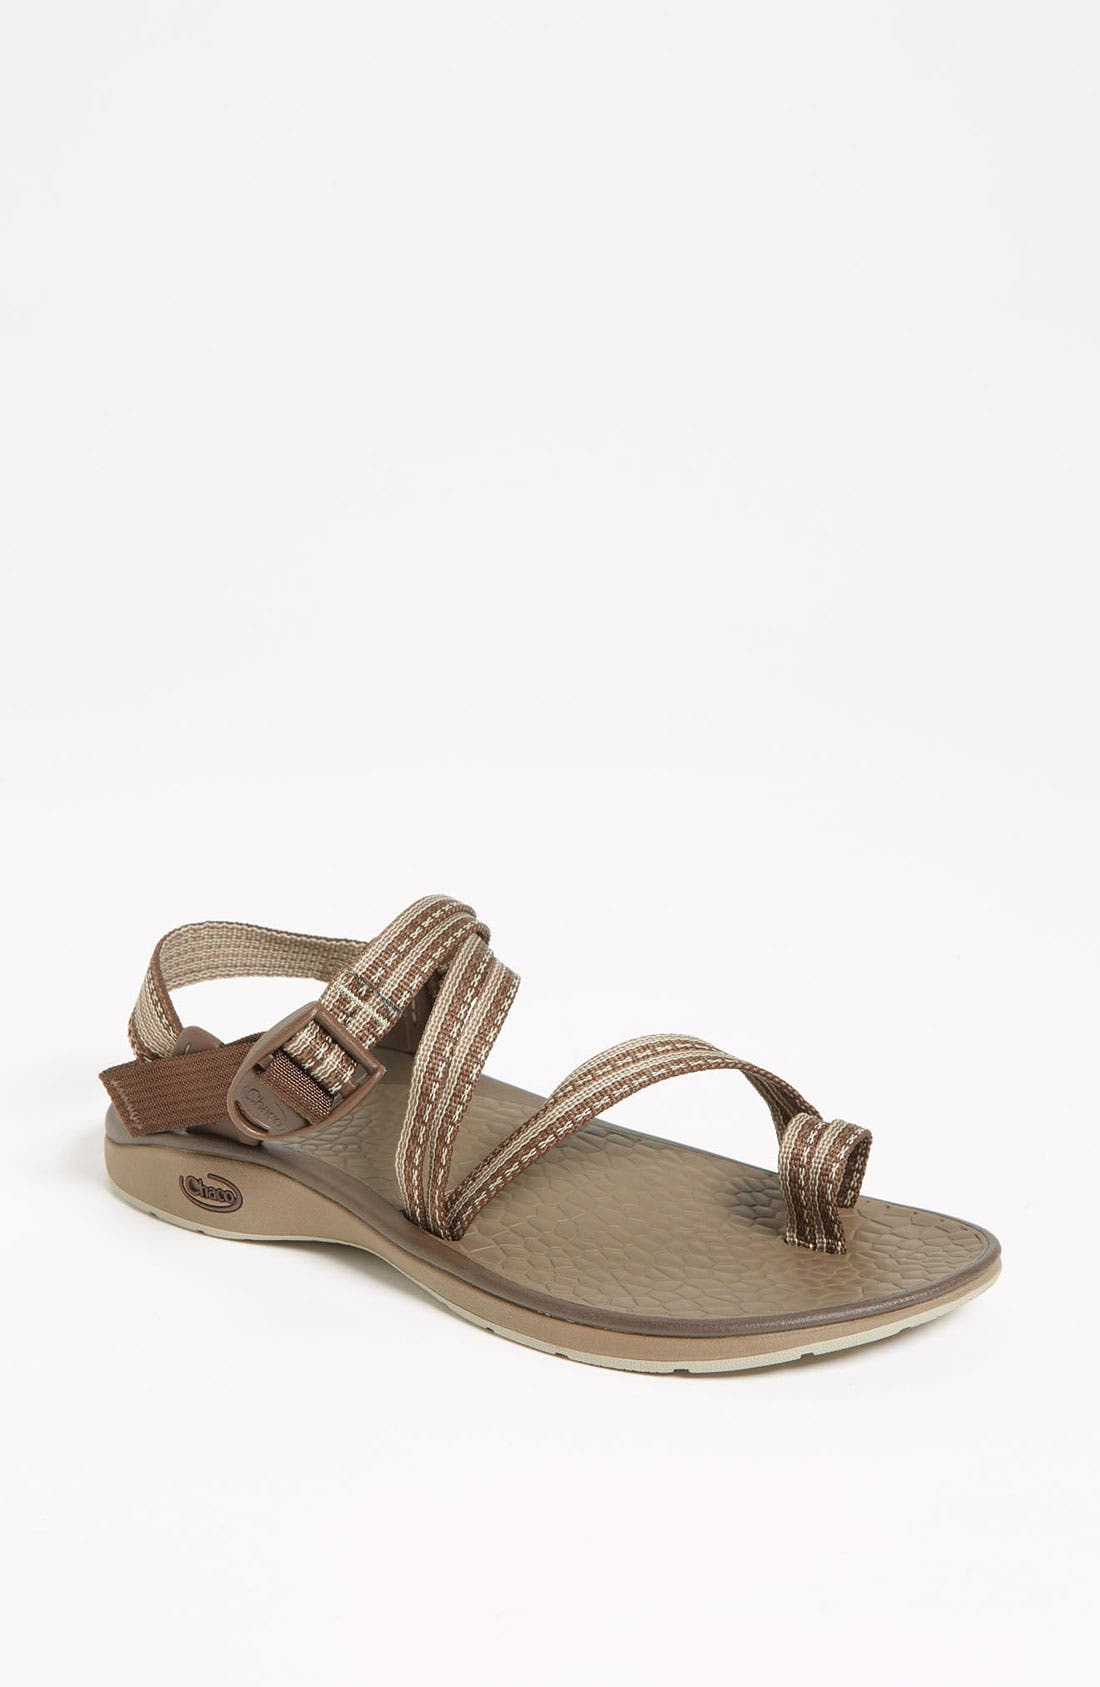 Alternate Image 1 Selected - Chaco 'Fantasia' Sandal